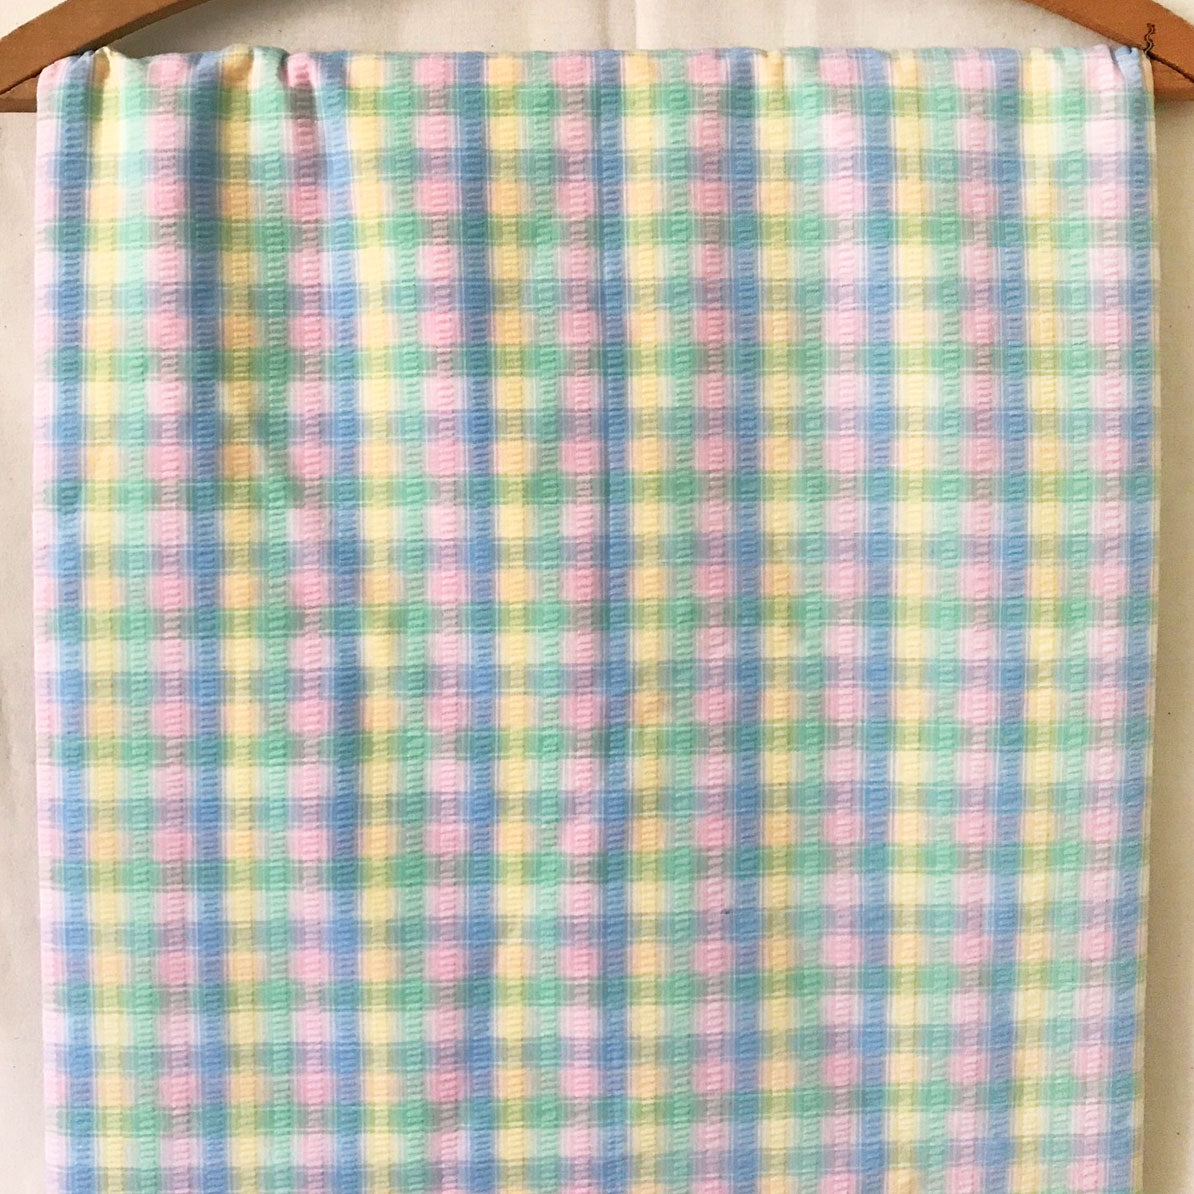 Pastel Plaid Seersucker Vintage Fabric [2.5Yds]